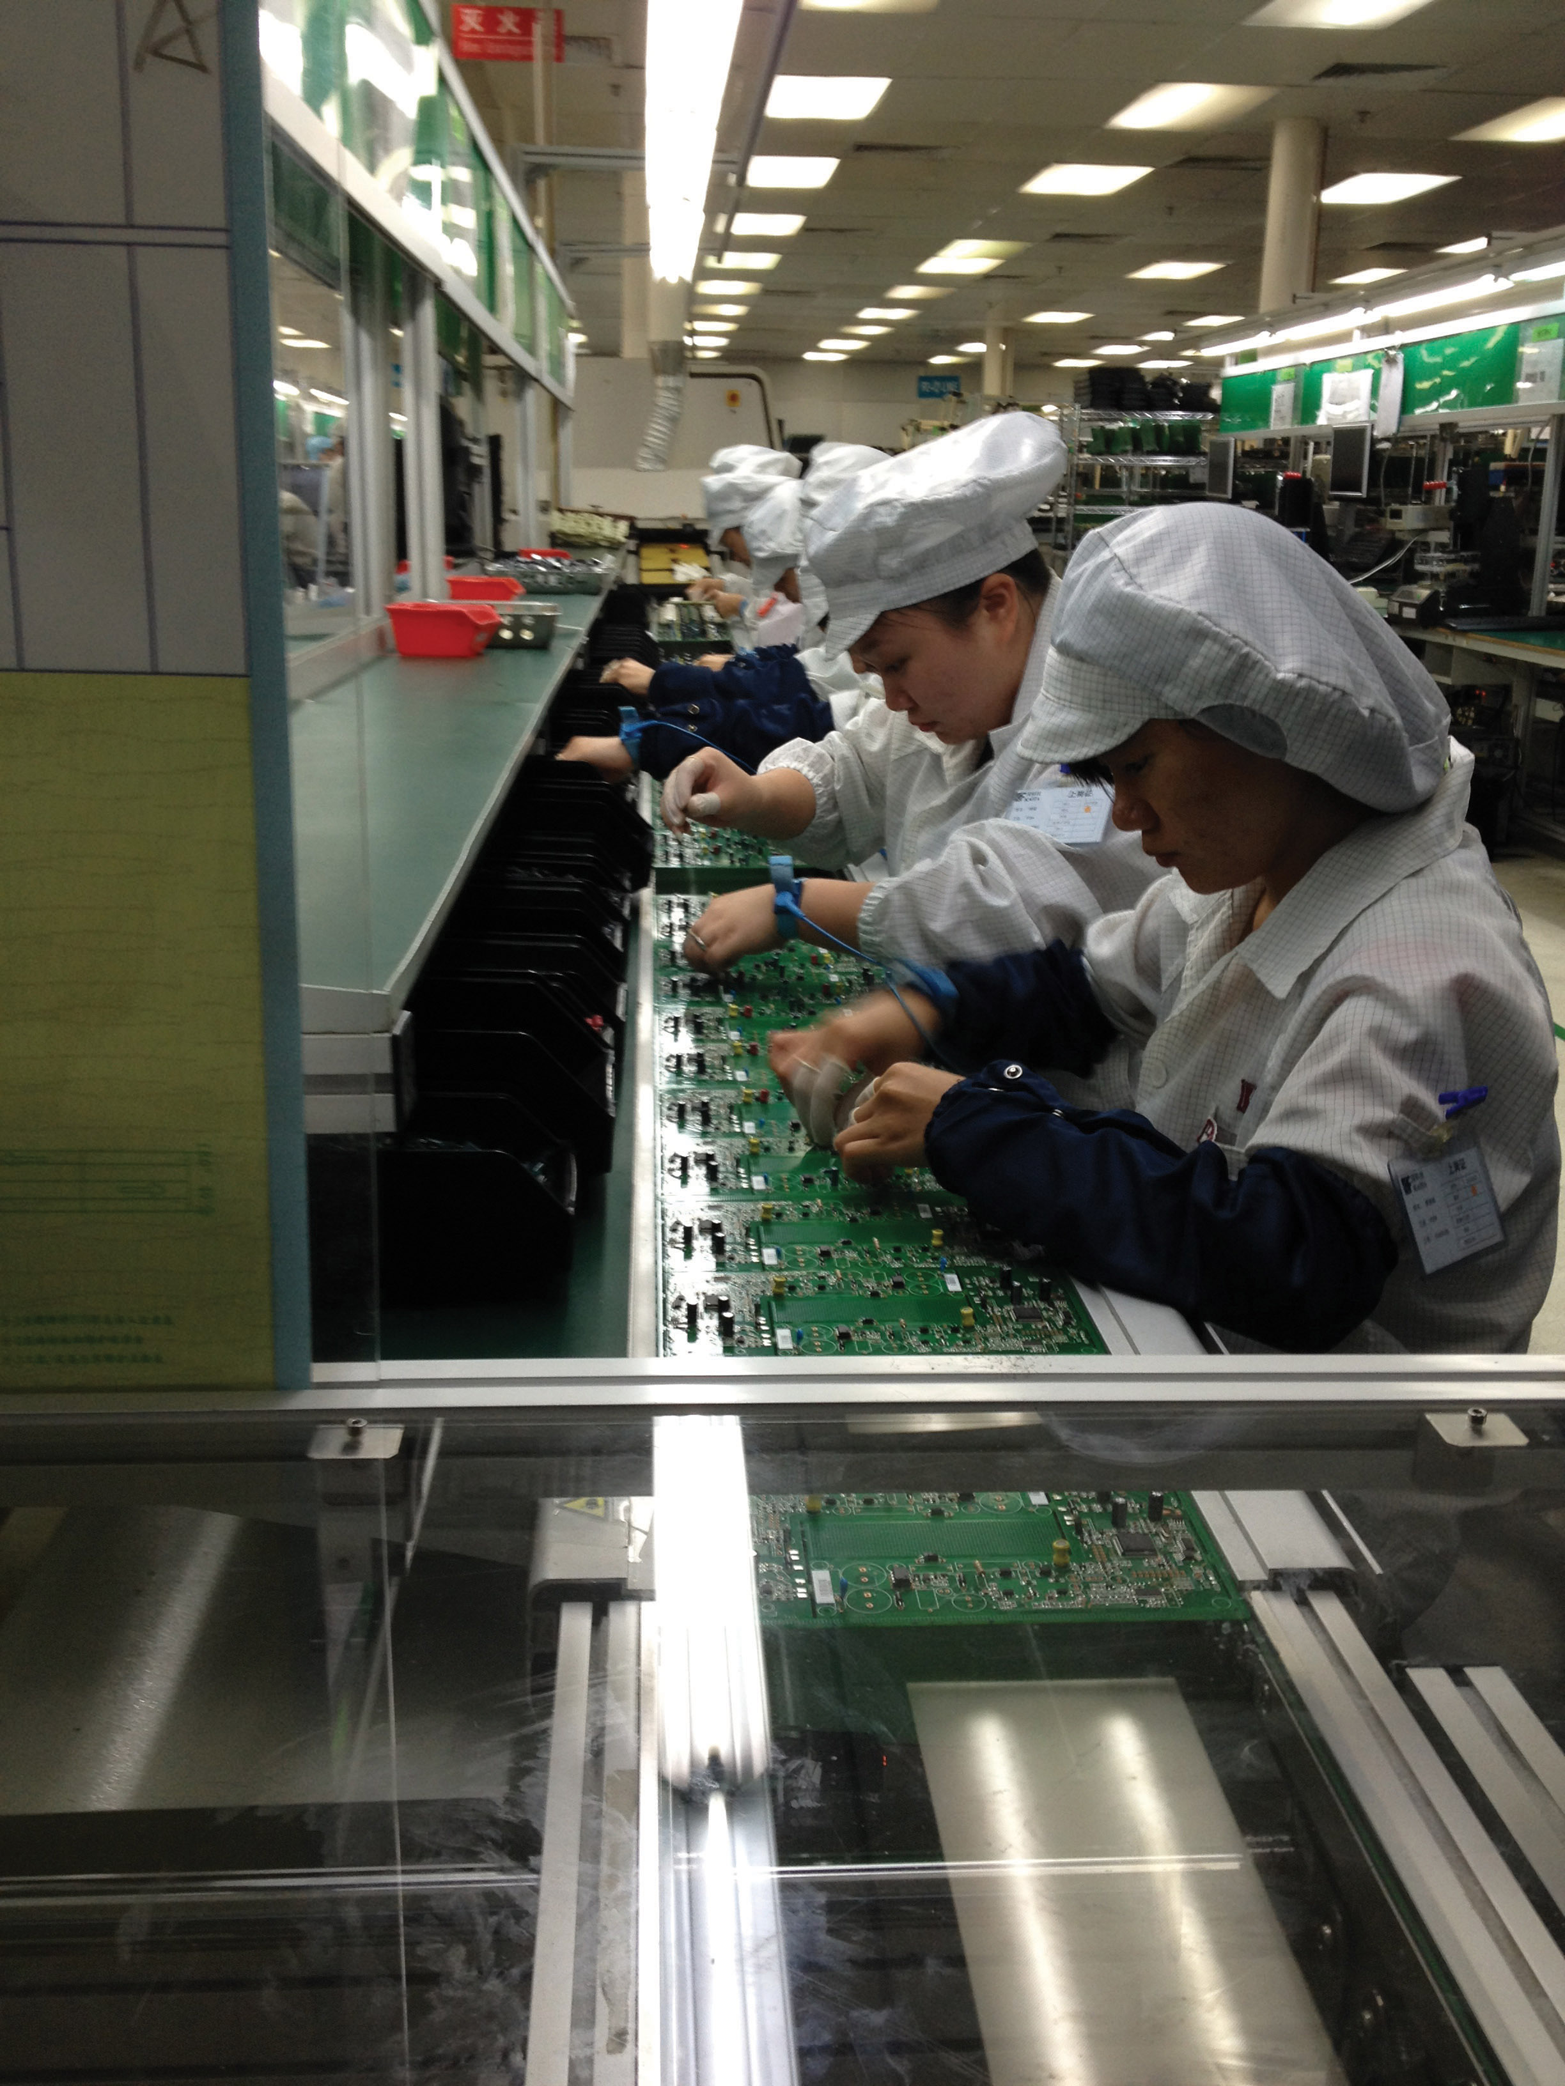 Factory workers in China assemble circuit boards. (Photo courtesy Dragon Innovation)